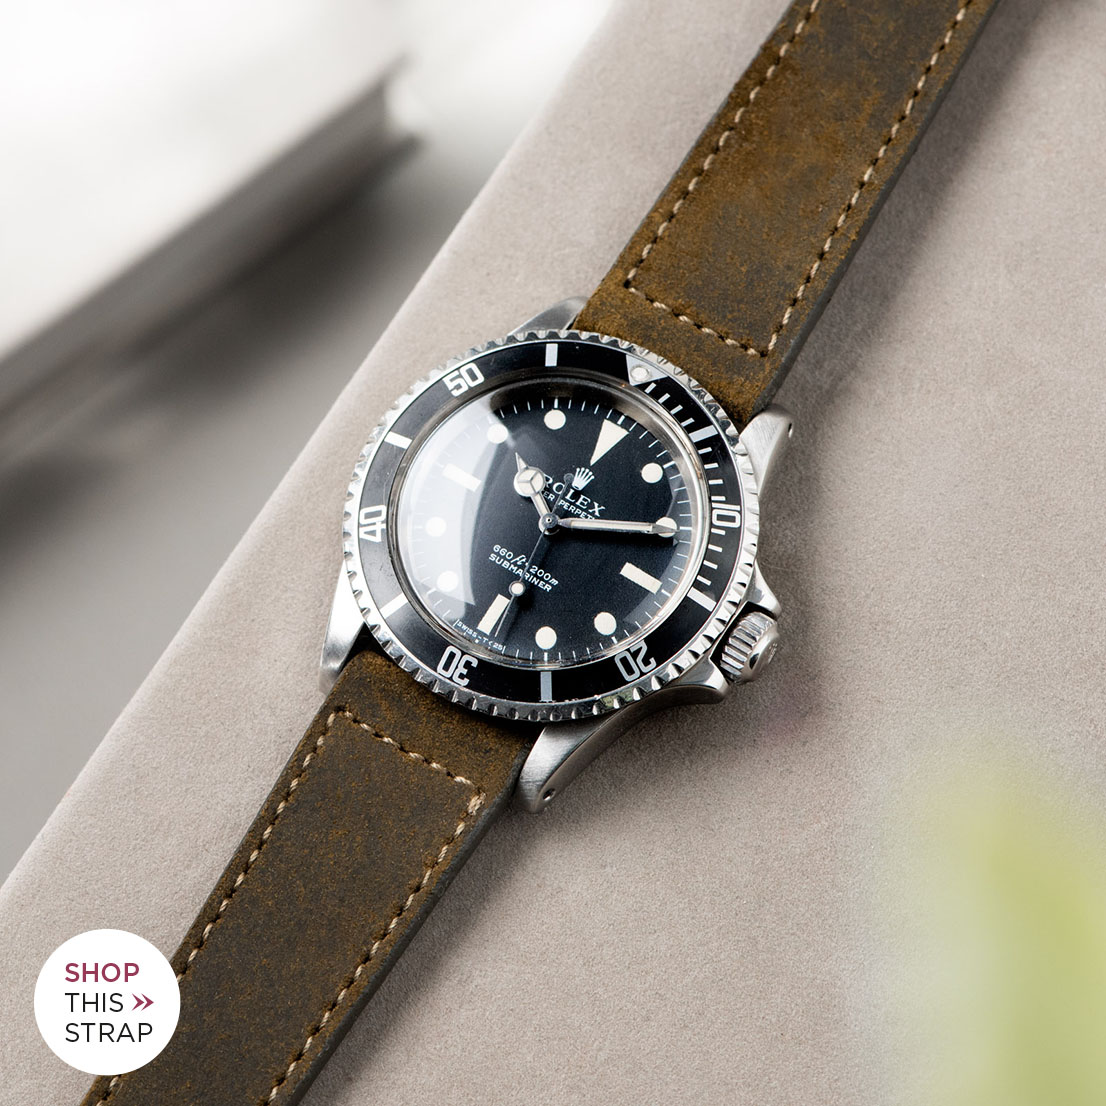 Bulang and Sons_Strap Guide_Rolex 5513 Submariner_MOSS GREEN RUGGED LEATHER WATCH STRAP